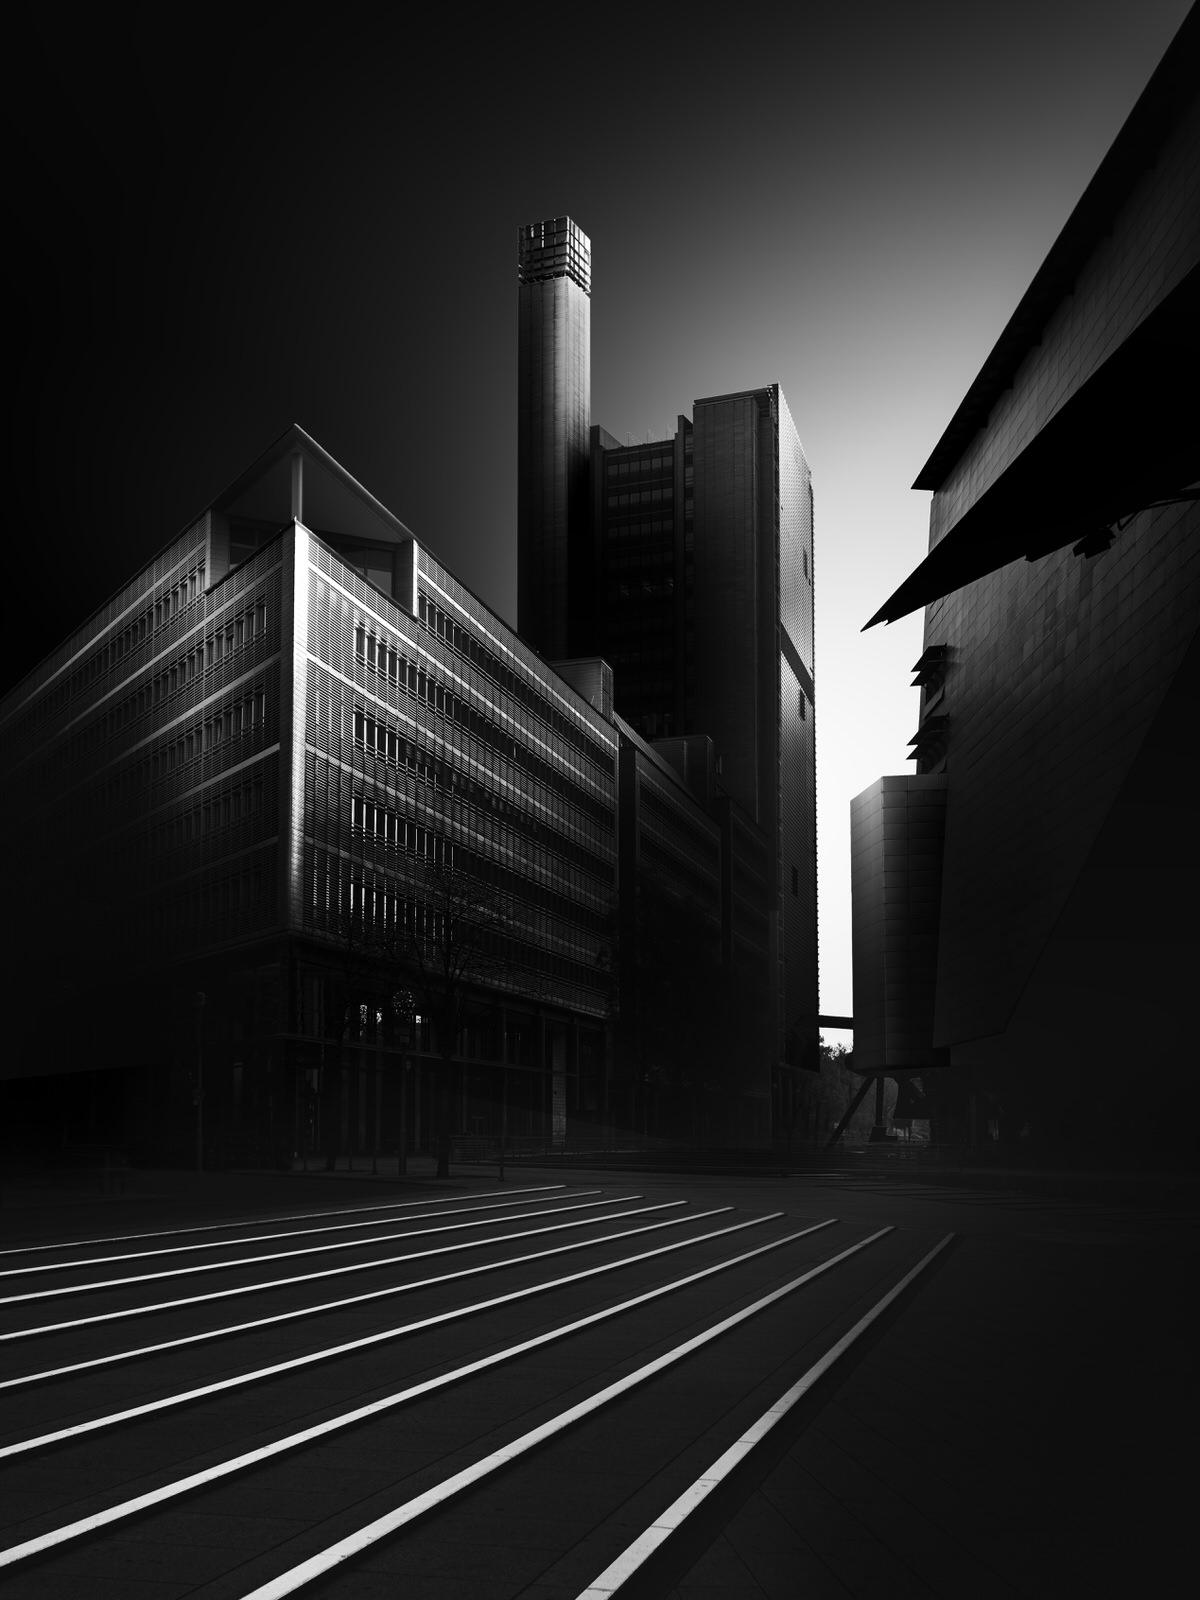 sky scraper and lines on floor fine art black and white